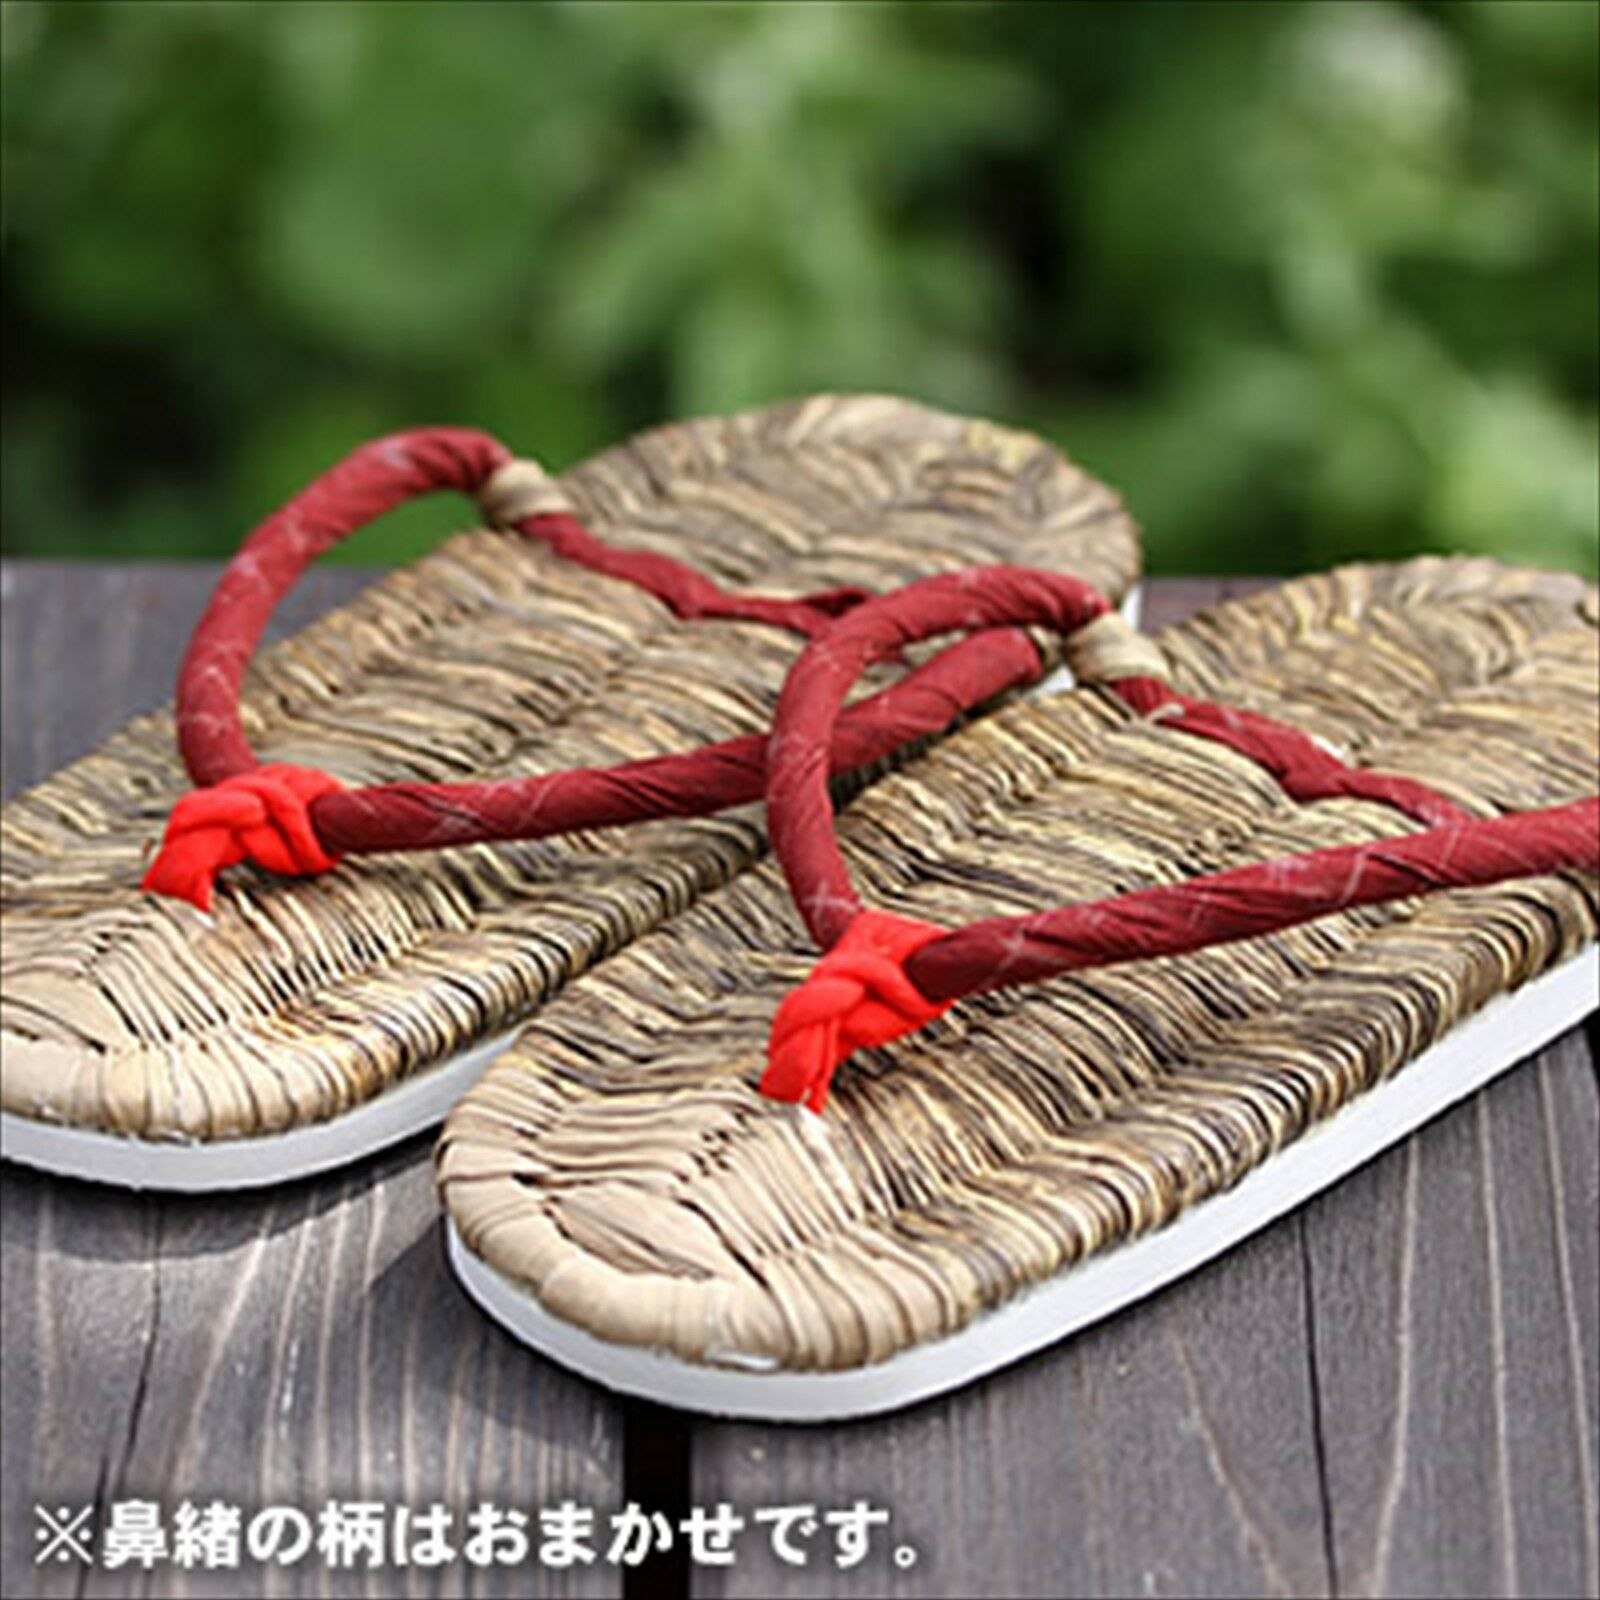 Japanese Traditional Bamboo Skin Health Slippers Zori Hand Made Donna 23.5cm